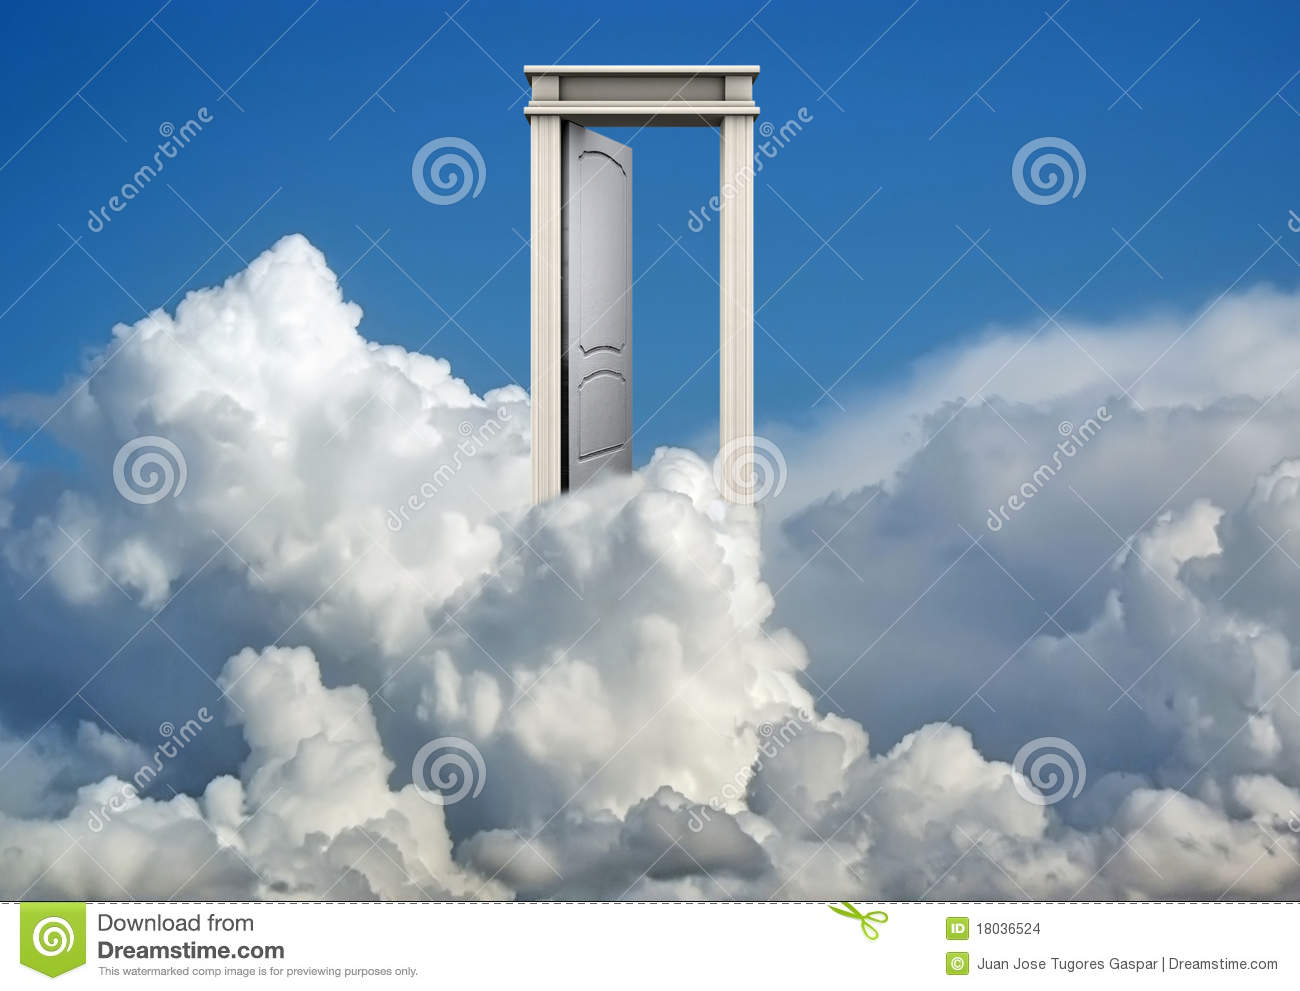 Door In Blue Sky And Clouds Stock Photo Image Of Entry